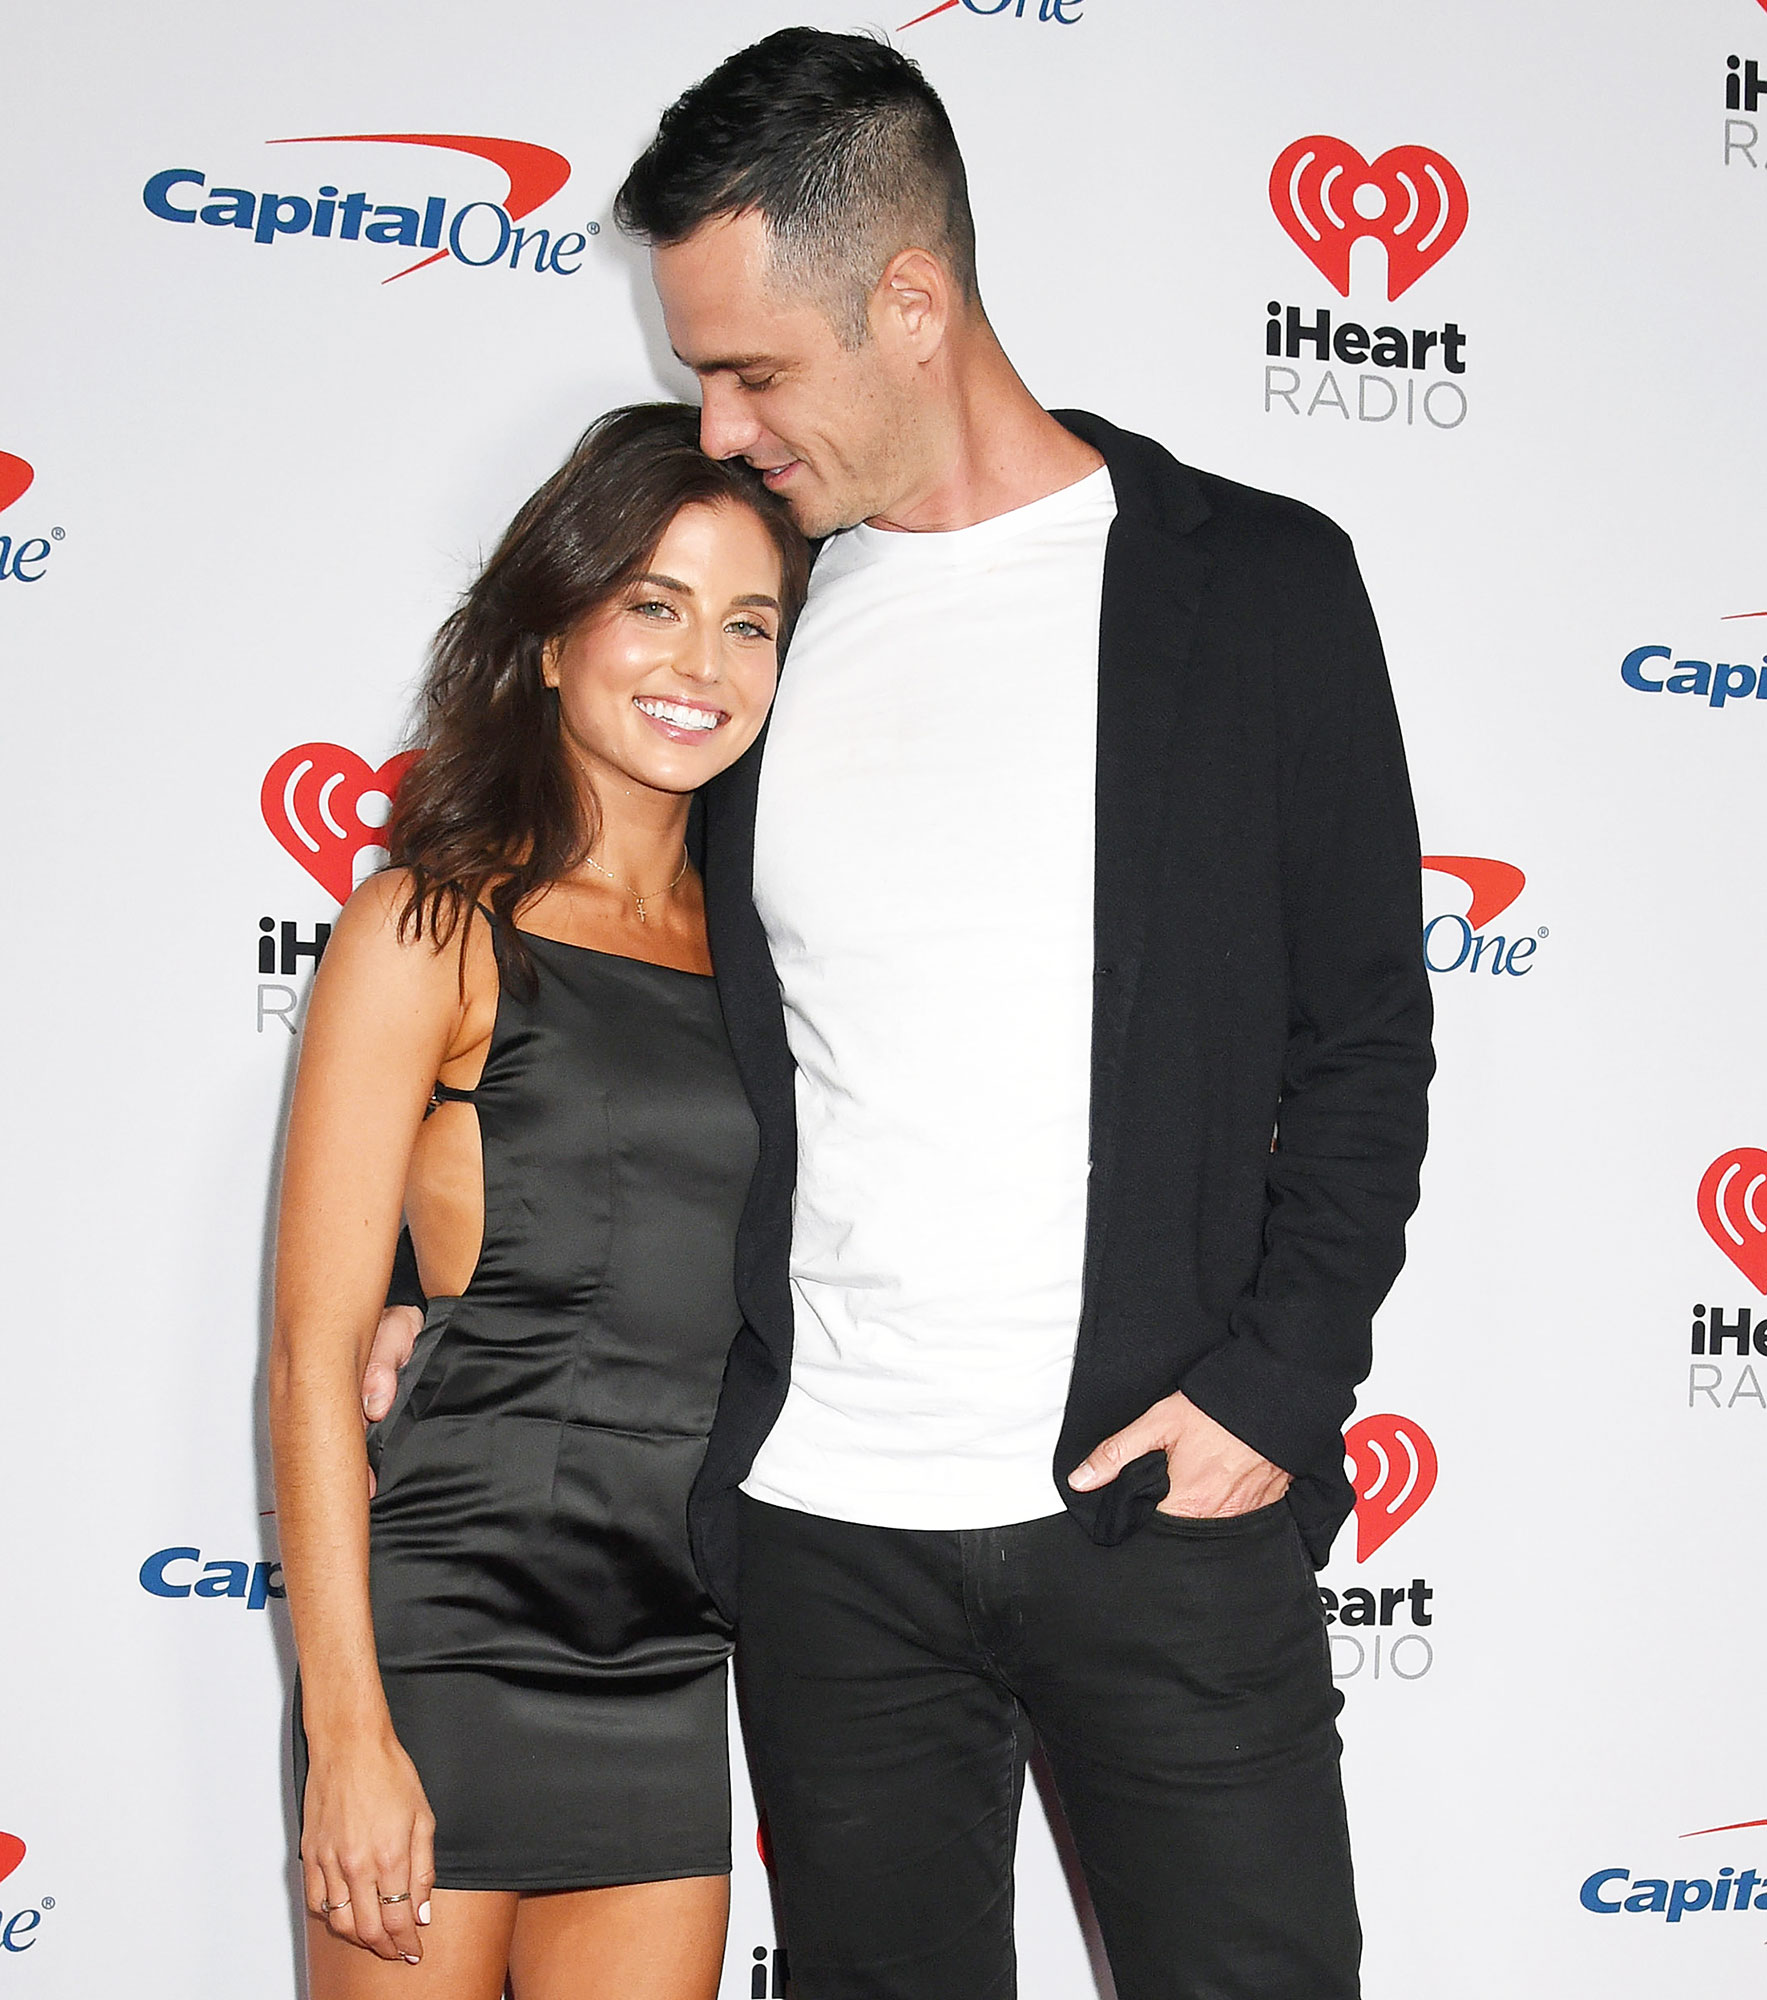 Jess Clarke and Ben Higgins attend the iHeartRadio Music Festival Ben Higgins Says He Is Definitely Getting Engaged to Girlfriend Jess Clarke in 2020